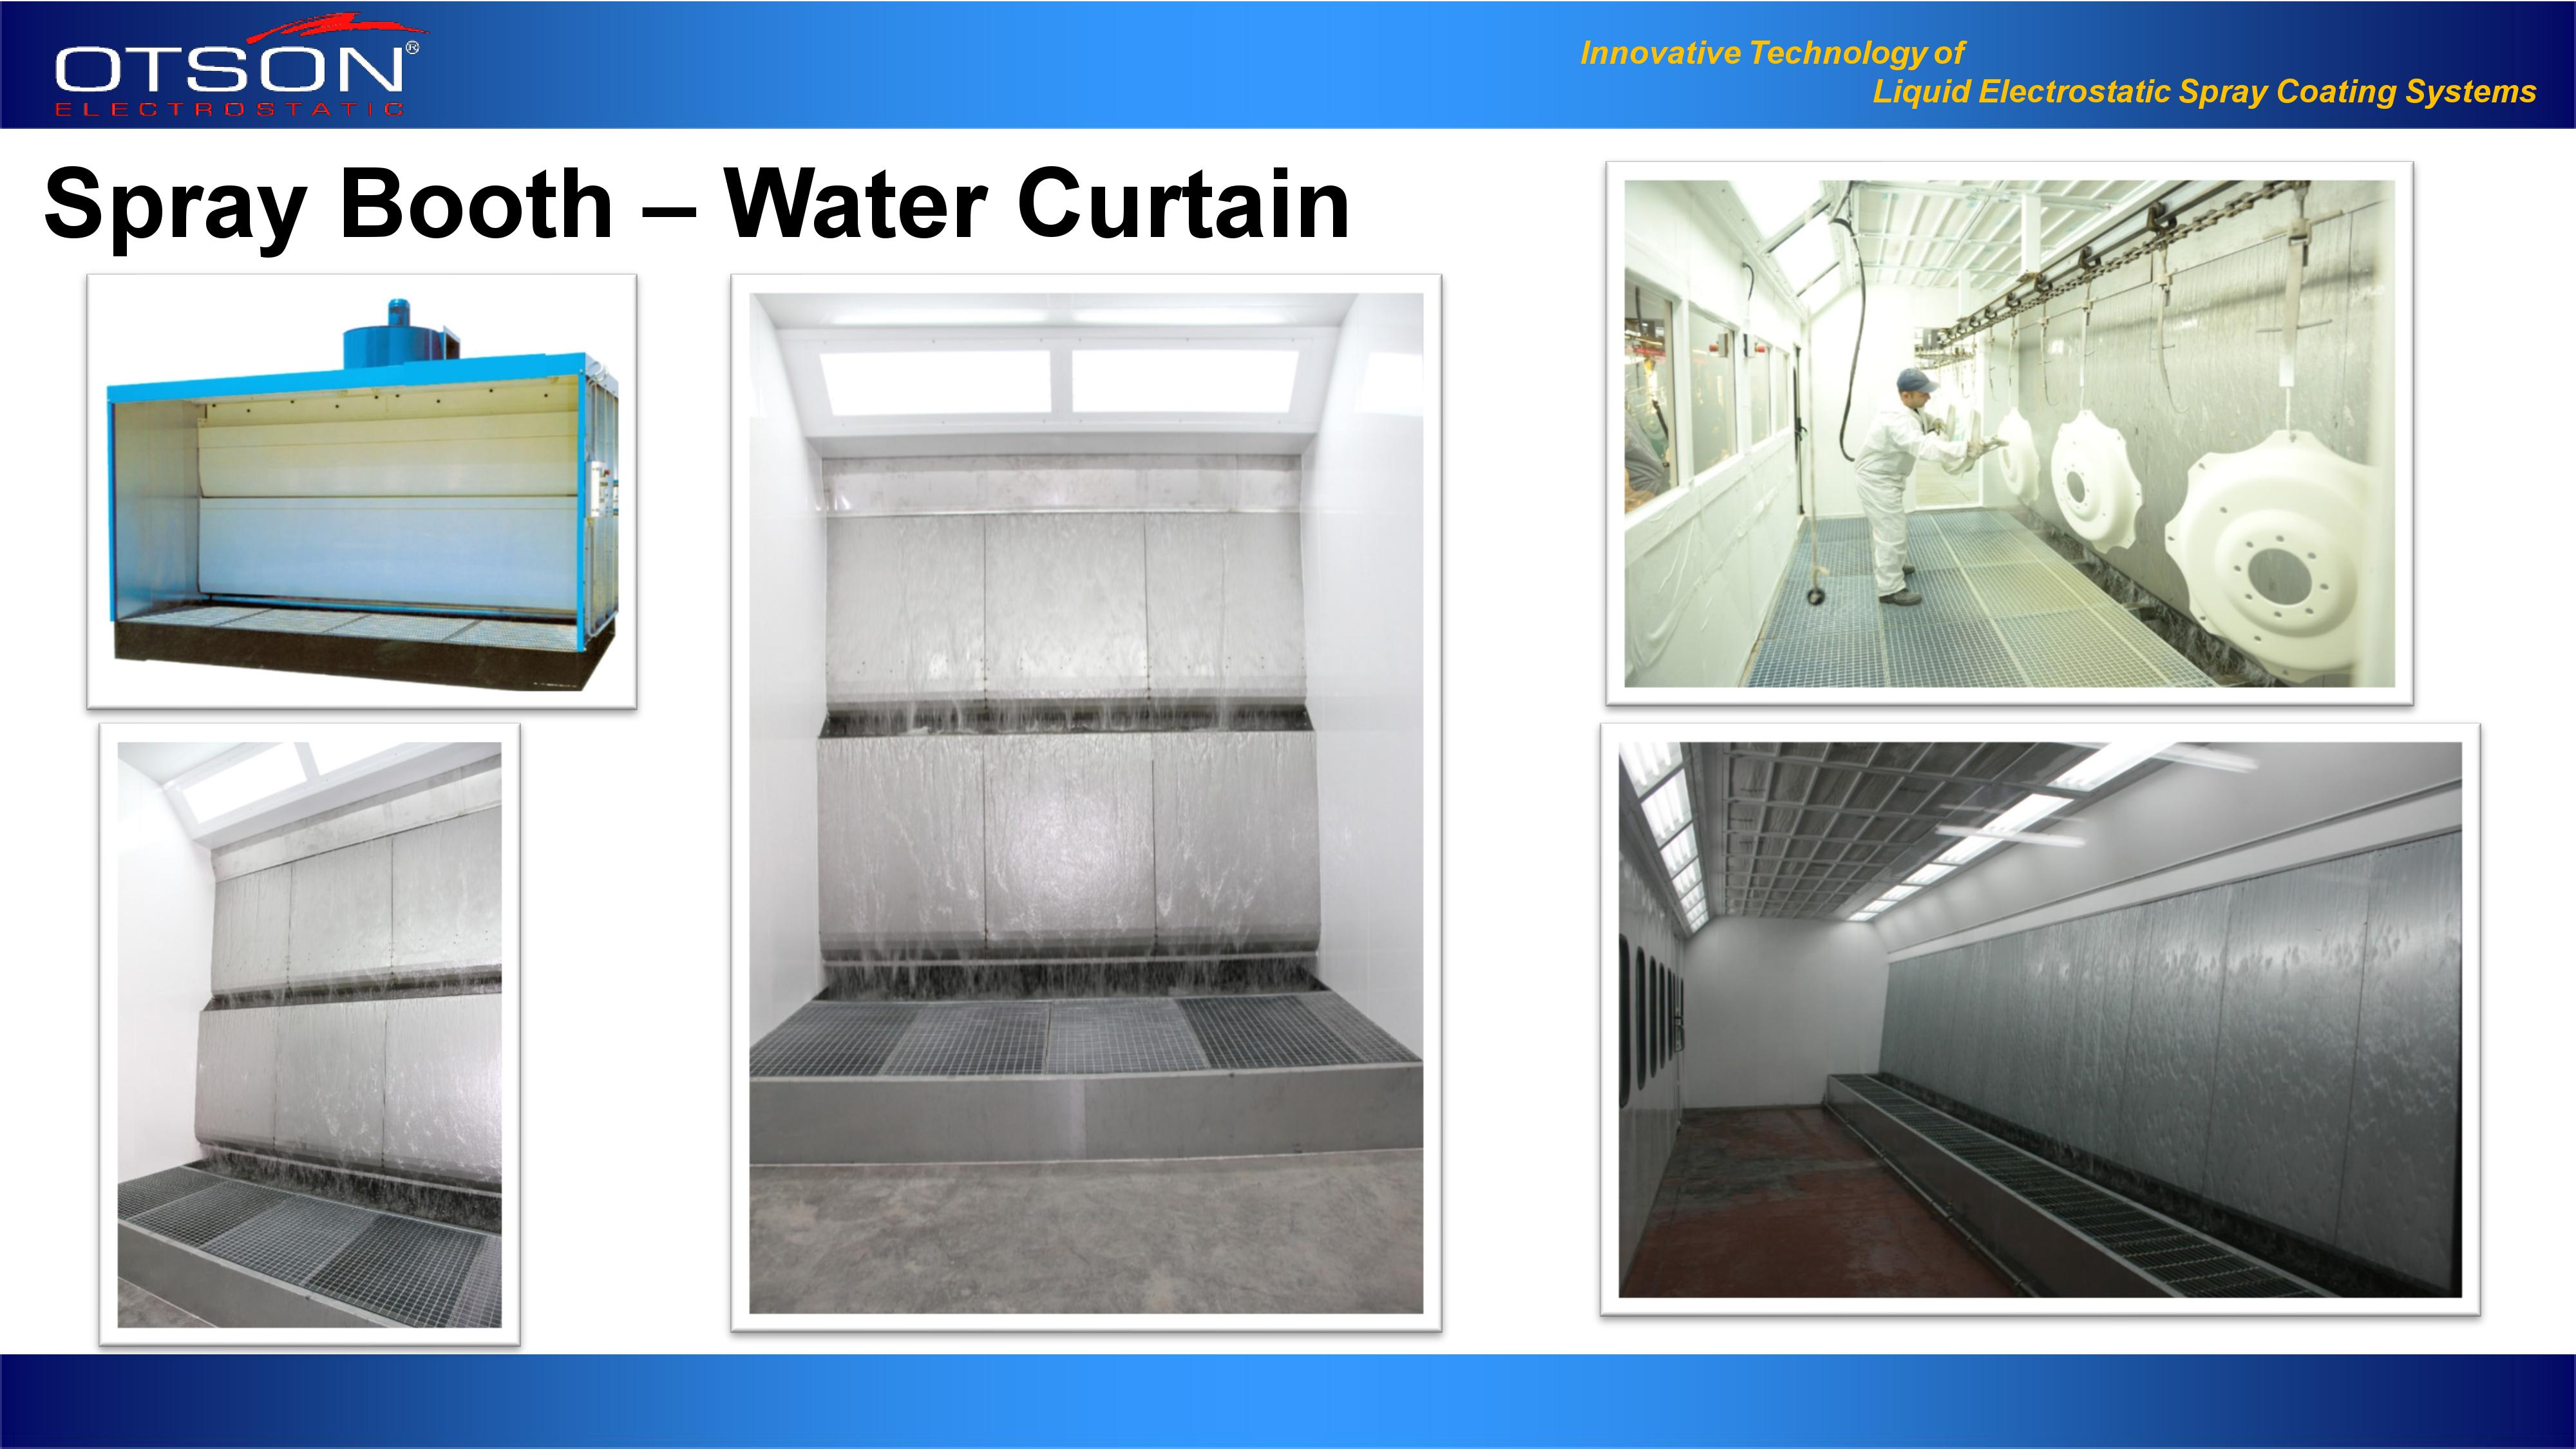 Spray Booth - Water Curtin